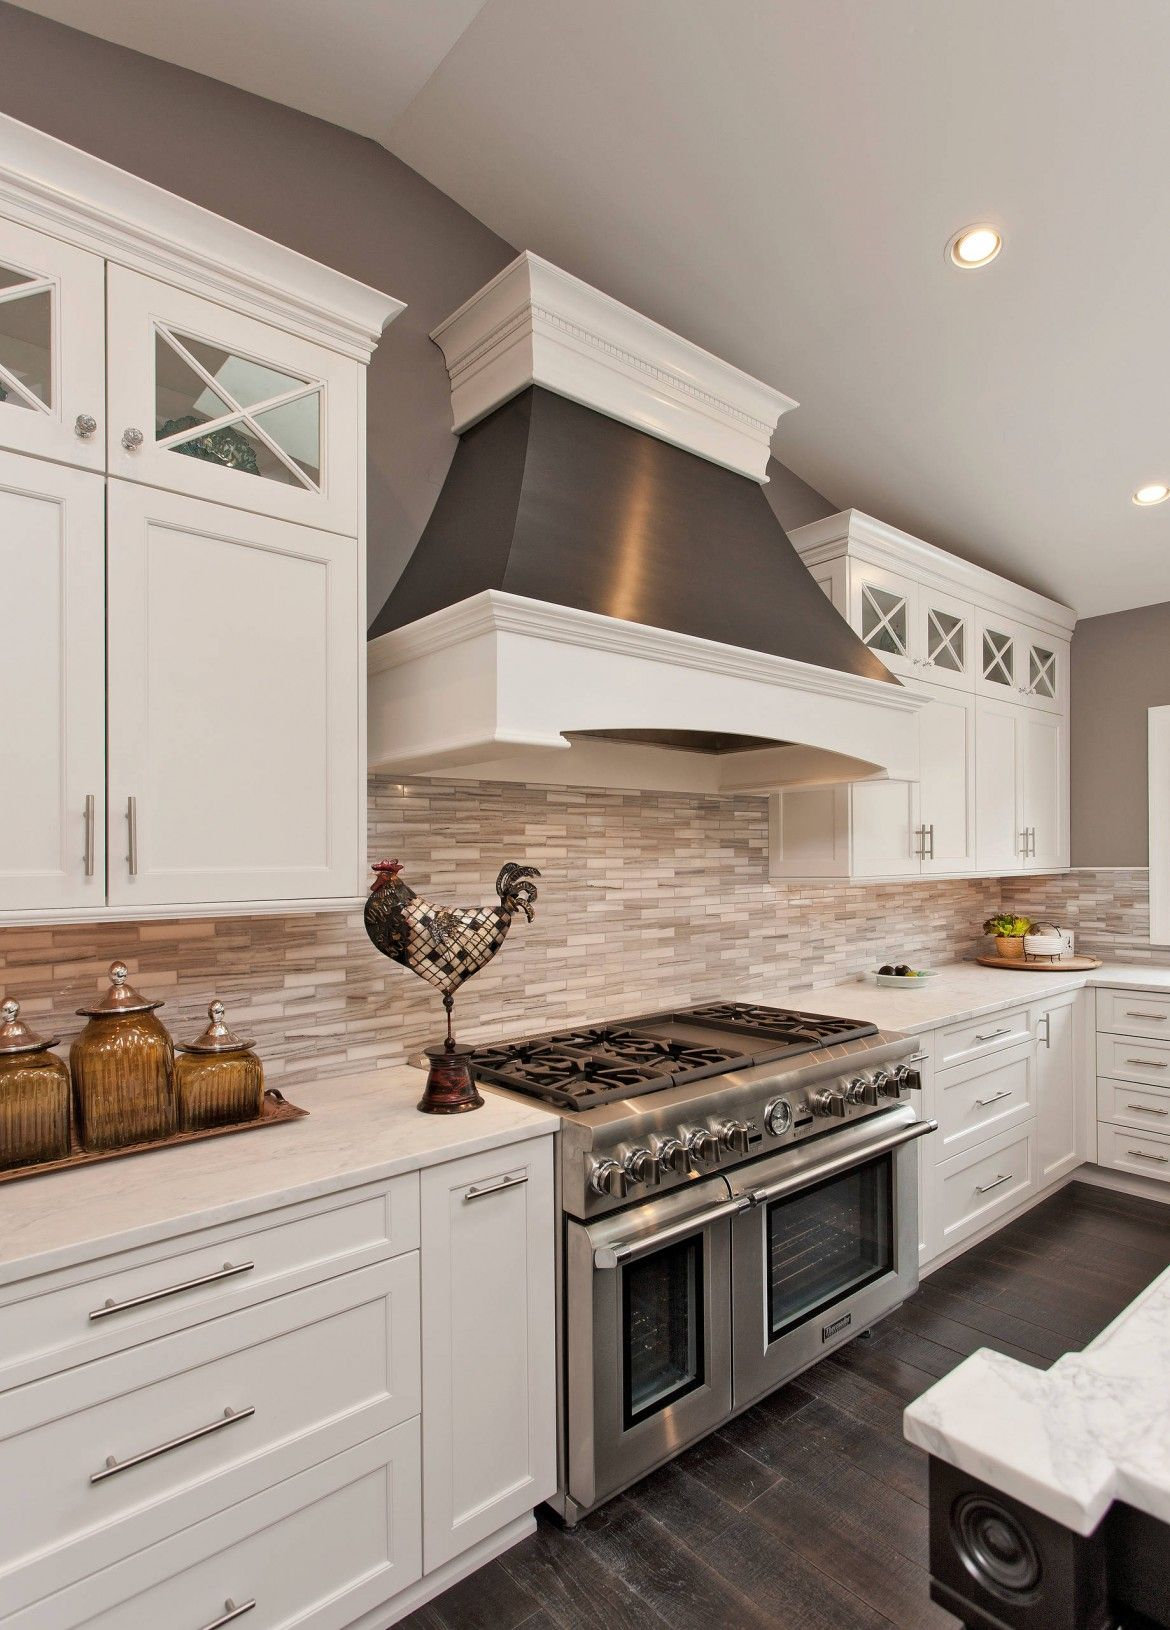 cabinets kitchen 46 Reasons Why Your Kitchen Should Definitely Have White Cabinets